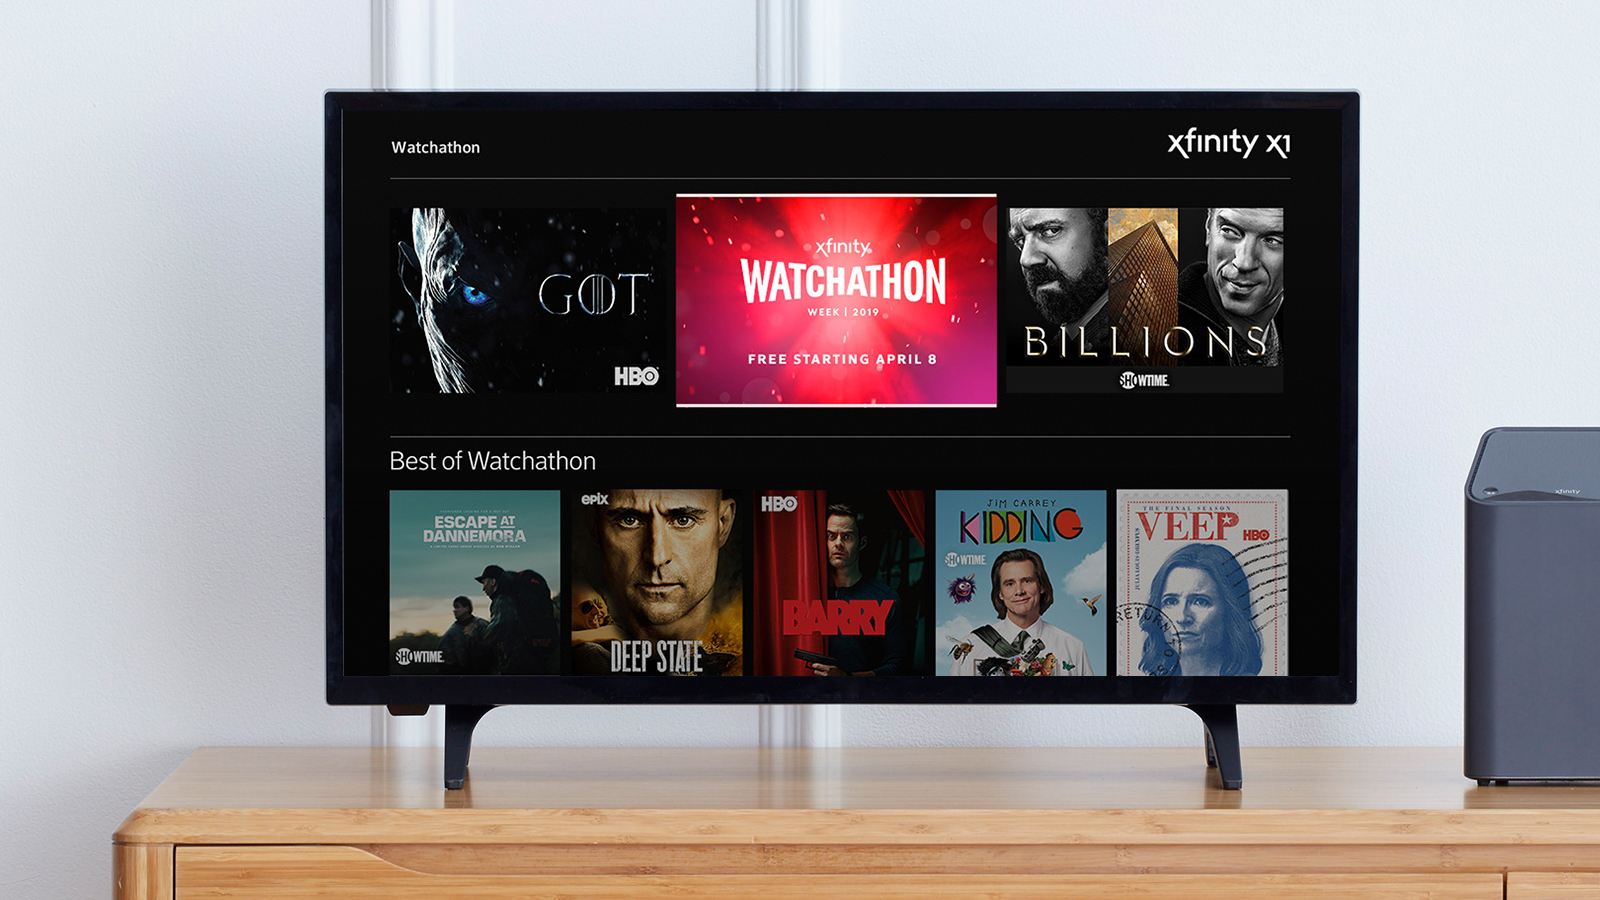 The Watchathon hub on Xfinity X1 displayed on a TV.